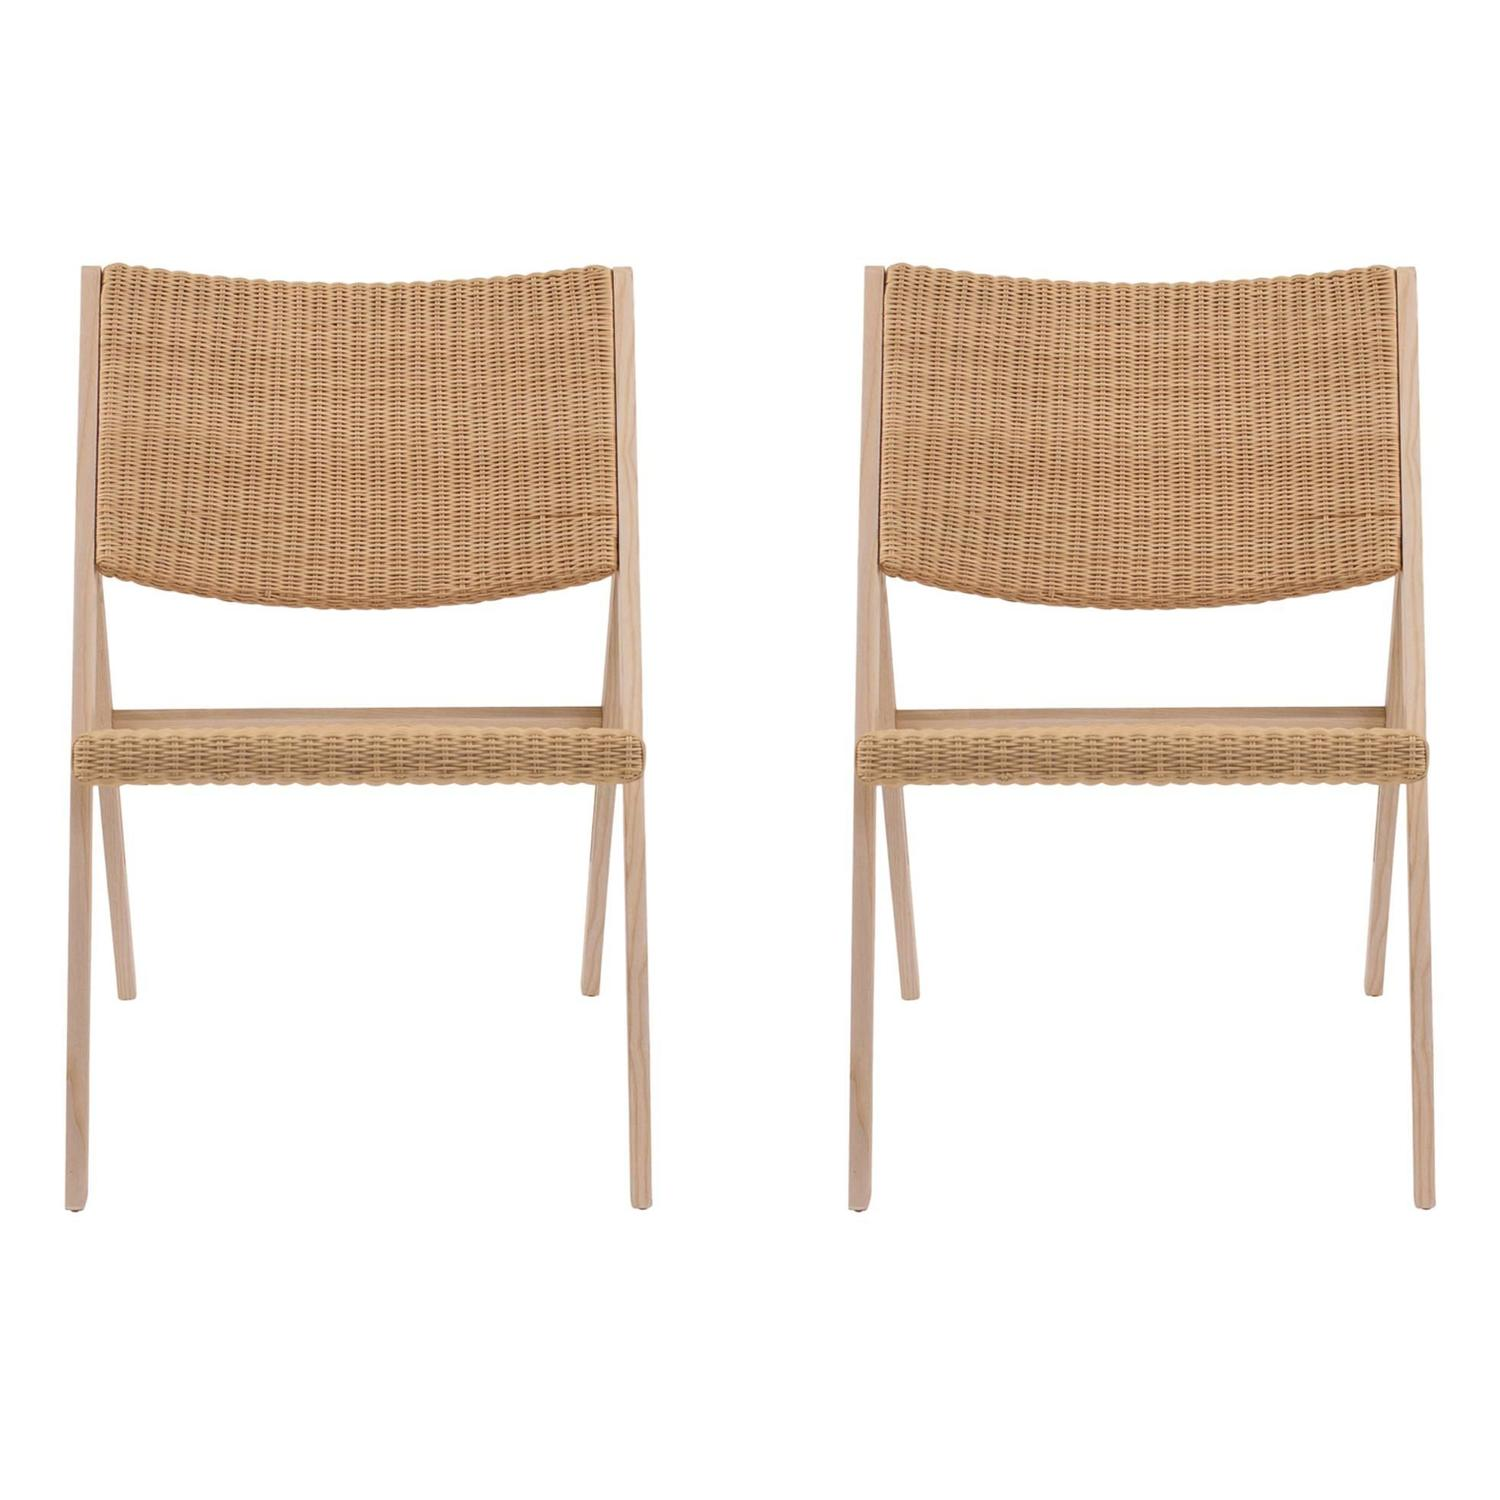 Wicker Folding Indoor Outdoor Chairs by Gio Ponti for Molteni